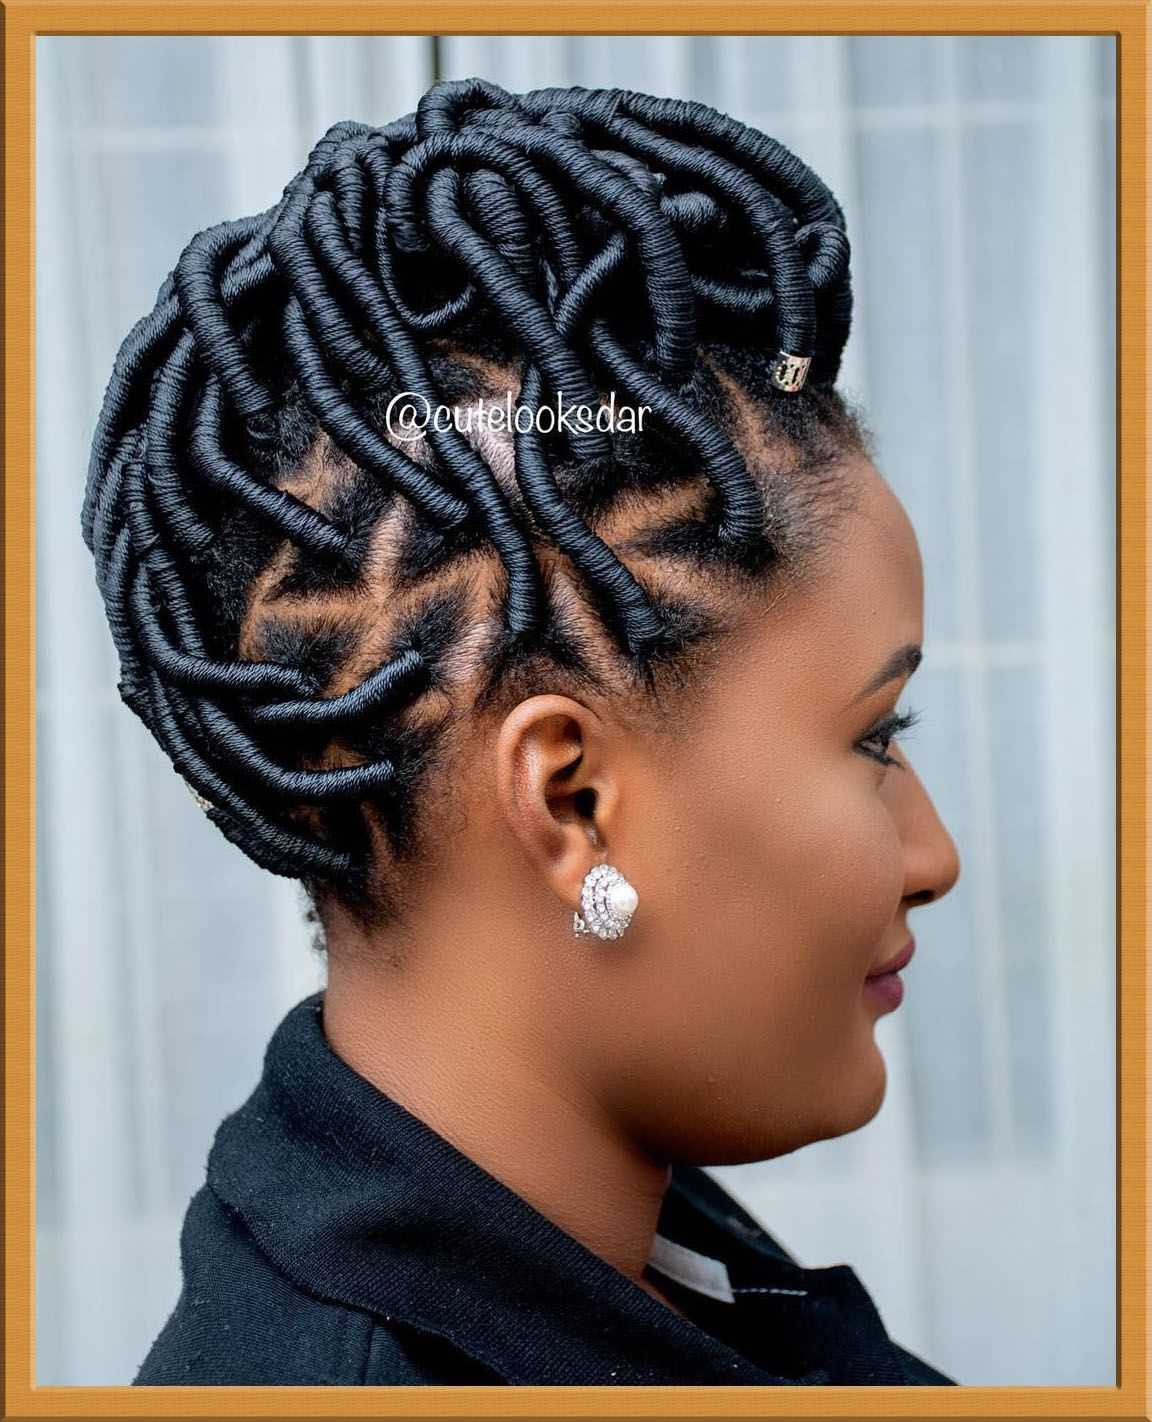 21 New Age Ways To Hair Styles – Dec 2020